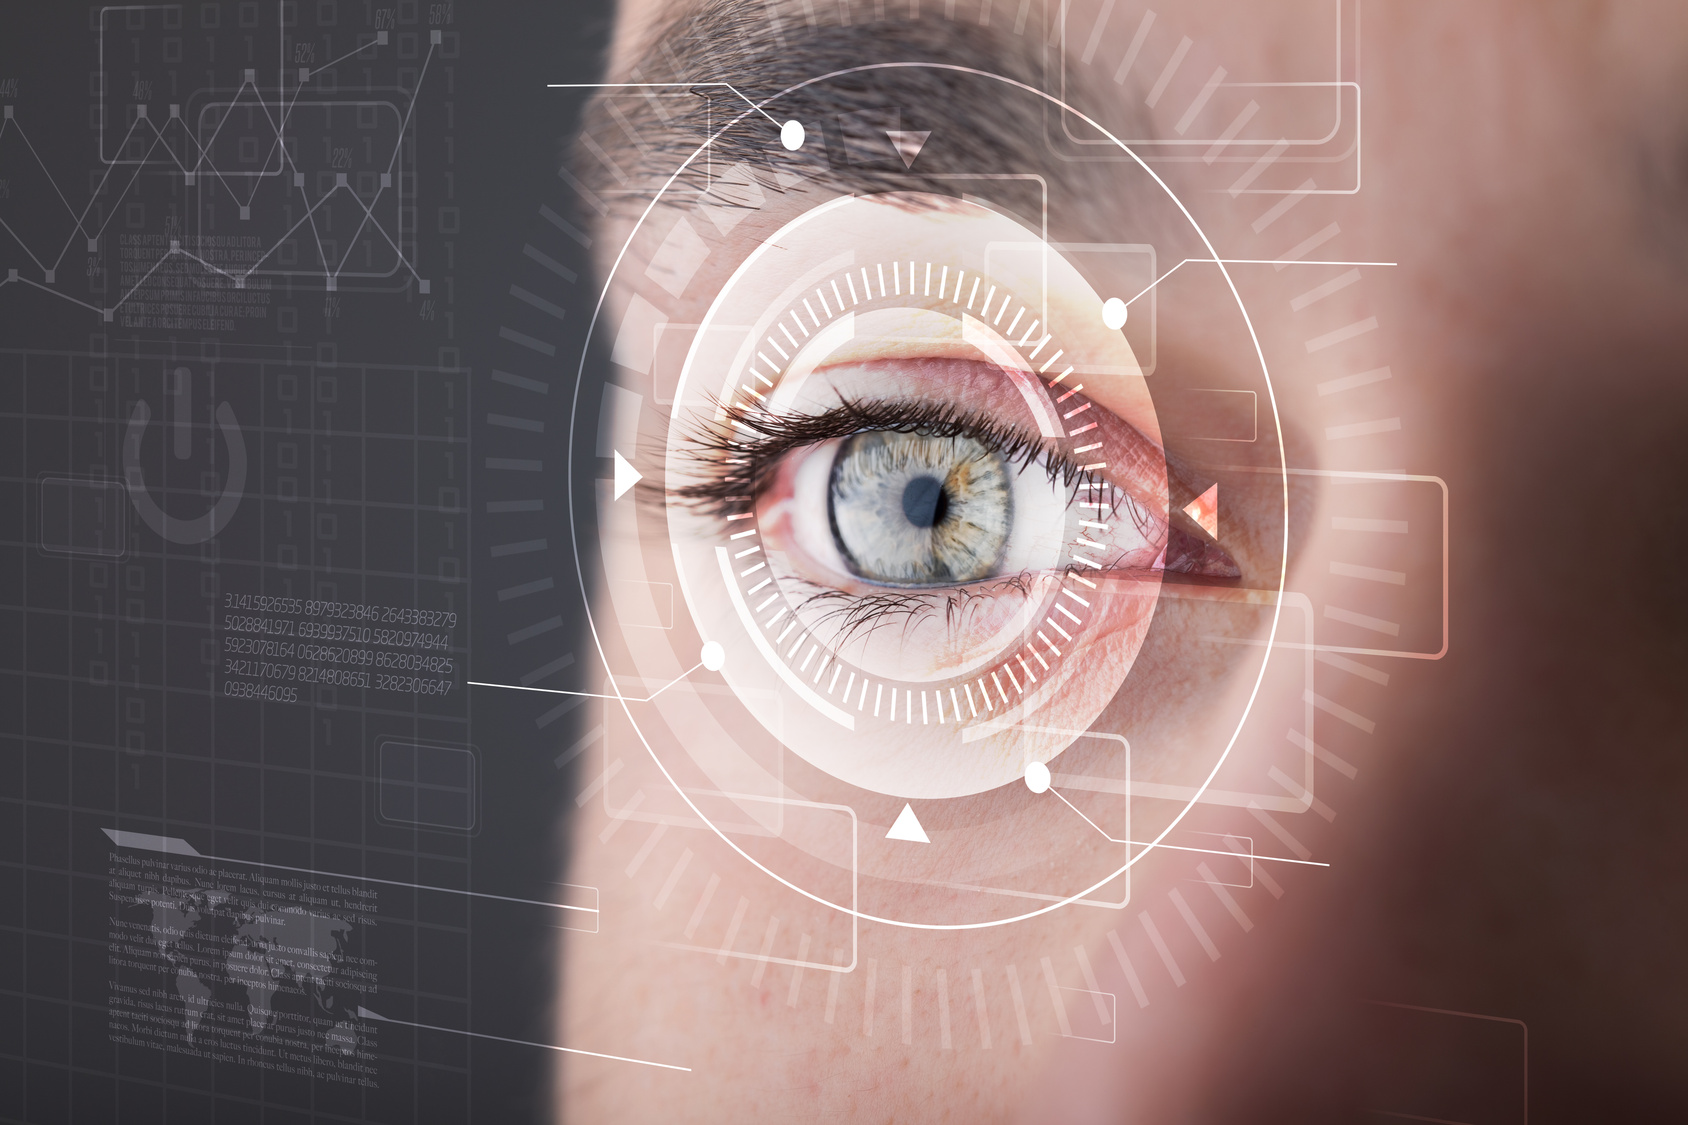 6 Fascinating Facts About Your Eyes And Your Vision